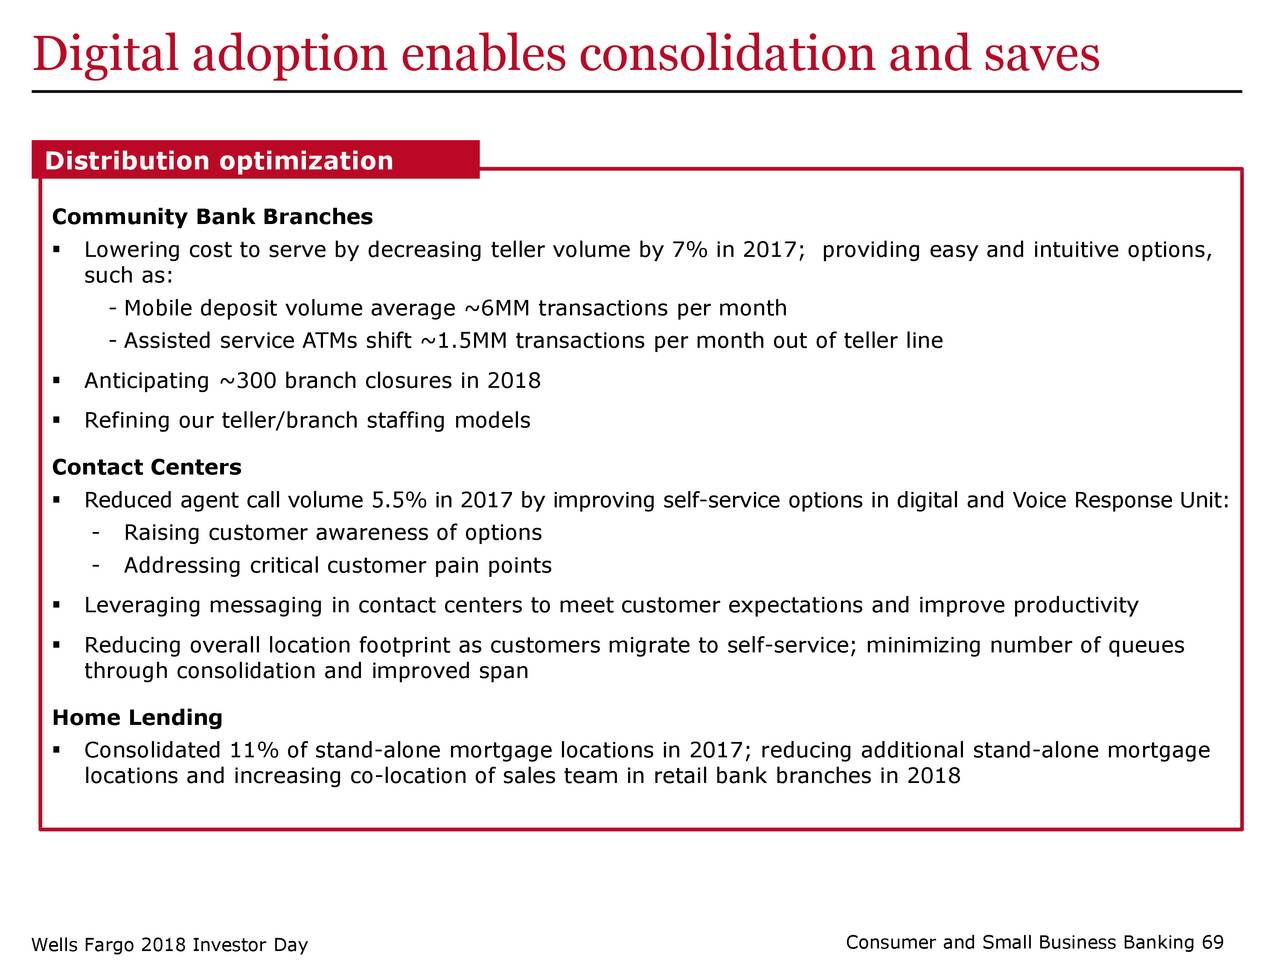 Wells Fargo (WFC) Investor Presentation - Slideshow - Wells